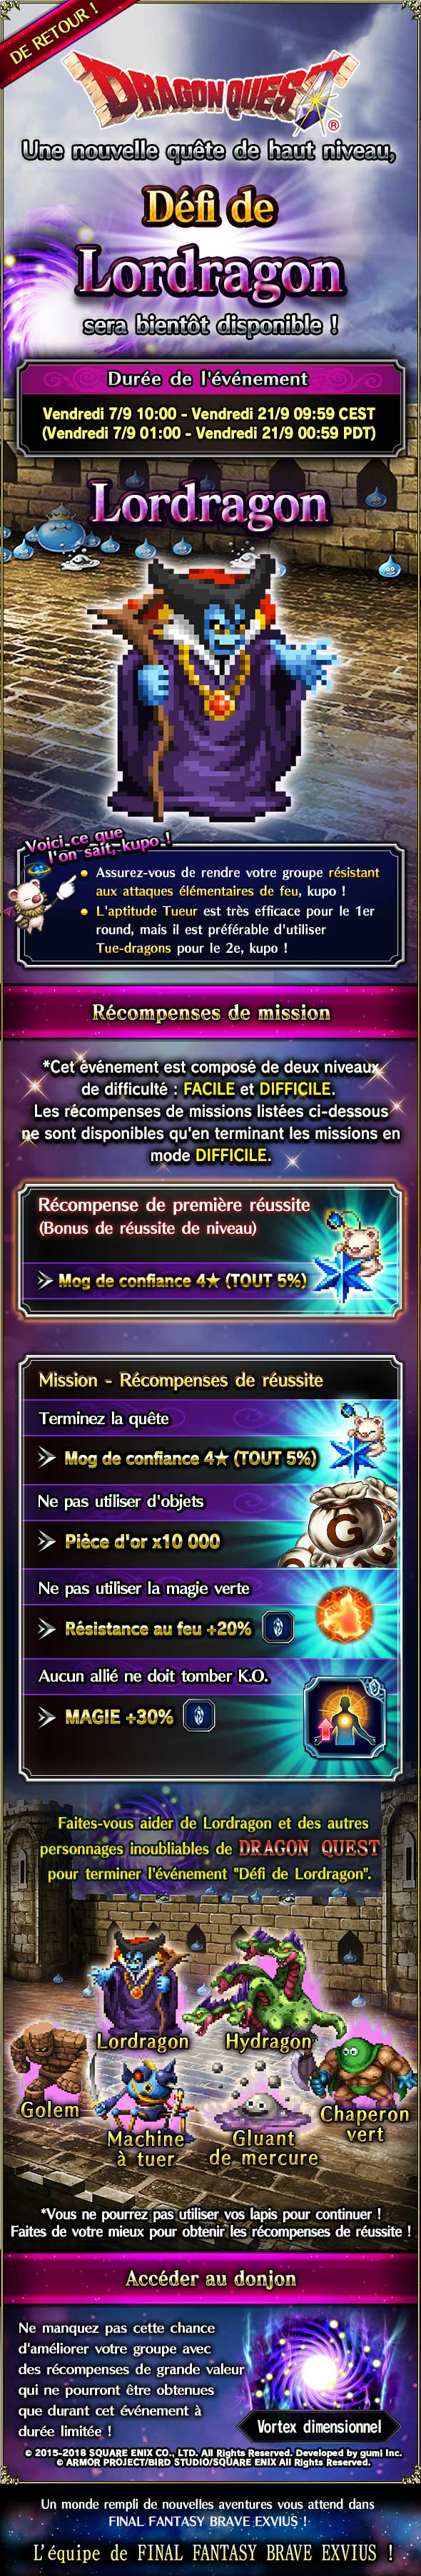 Evenement Collab DQ #1 (Rerun) - Trial Lordragon - du 07/09 au 21/09/18 Dragonlords_Challenge